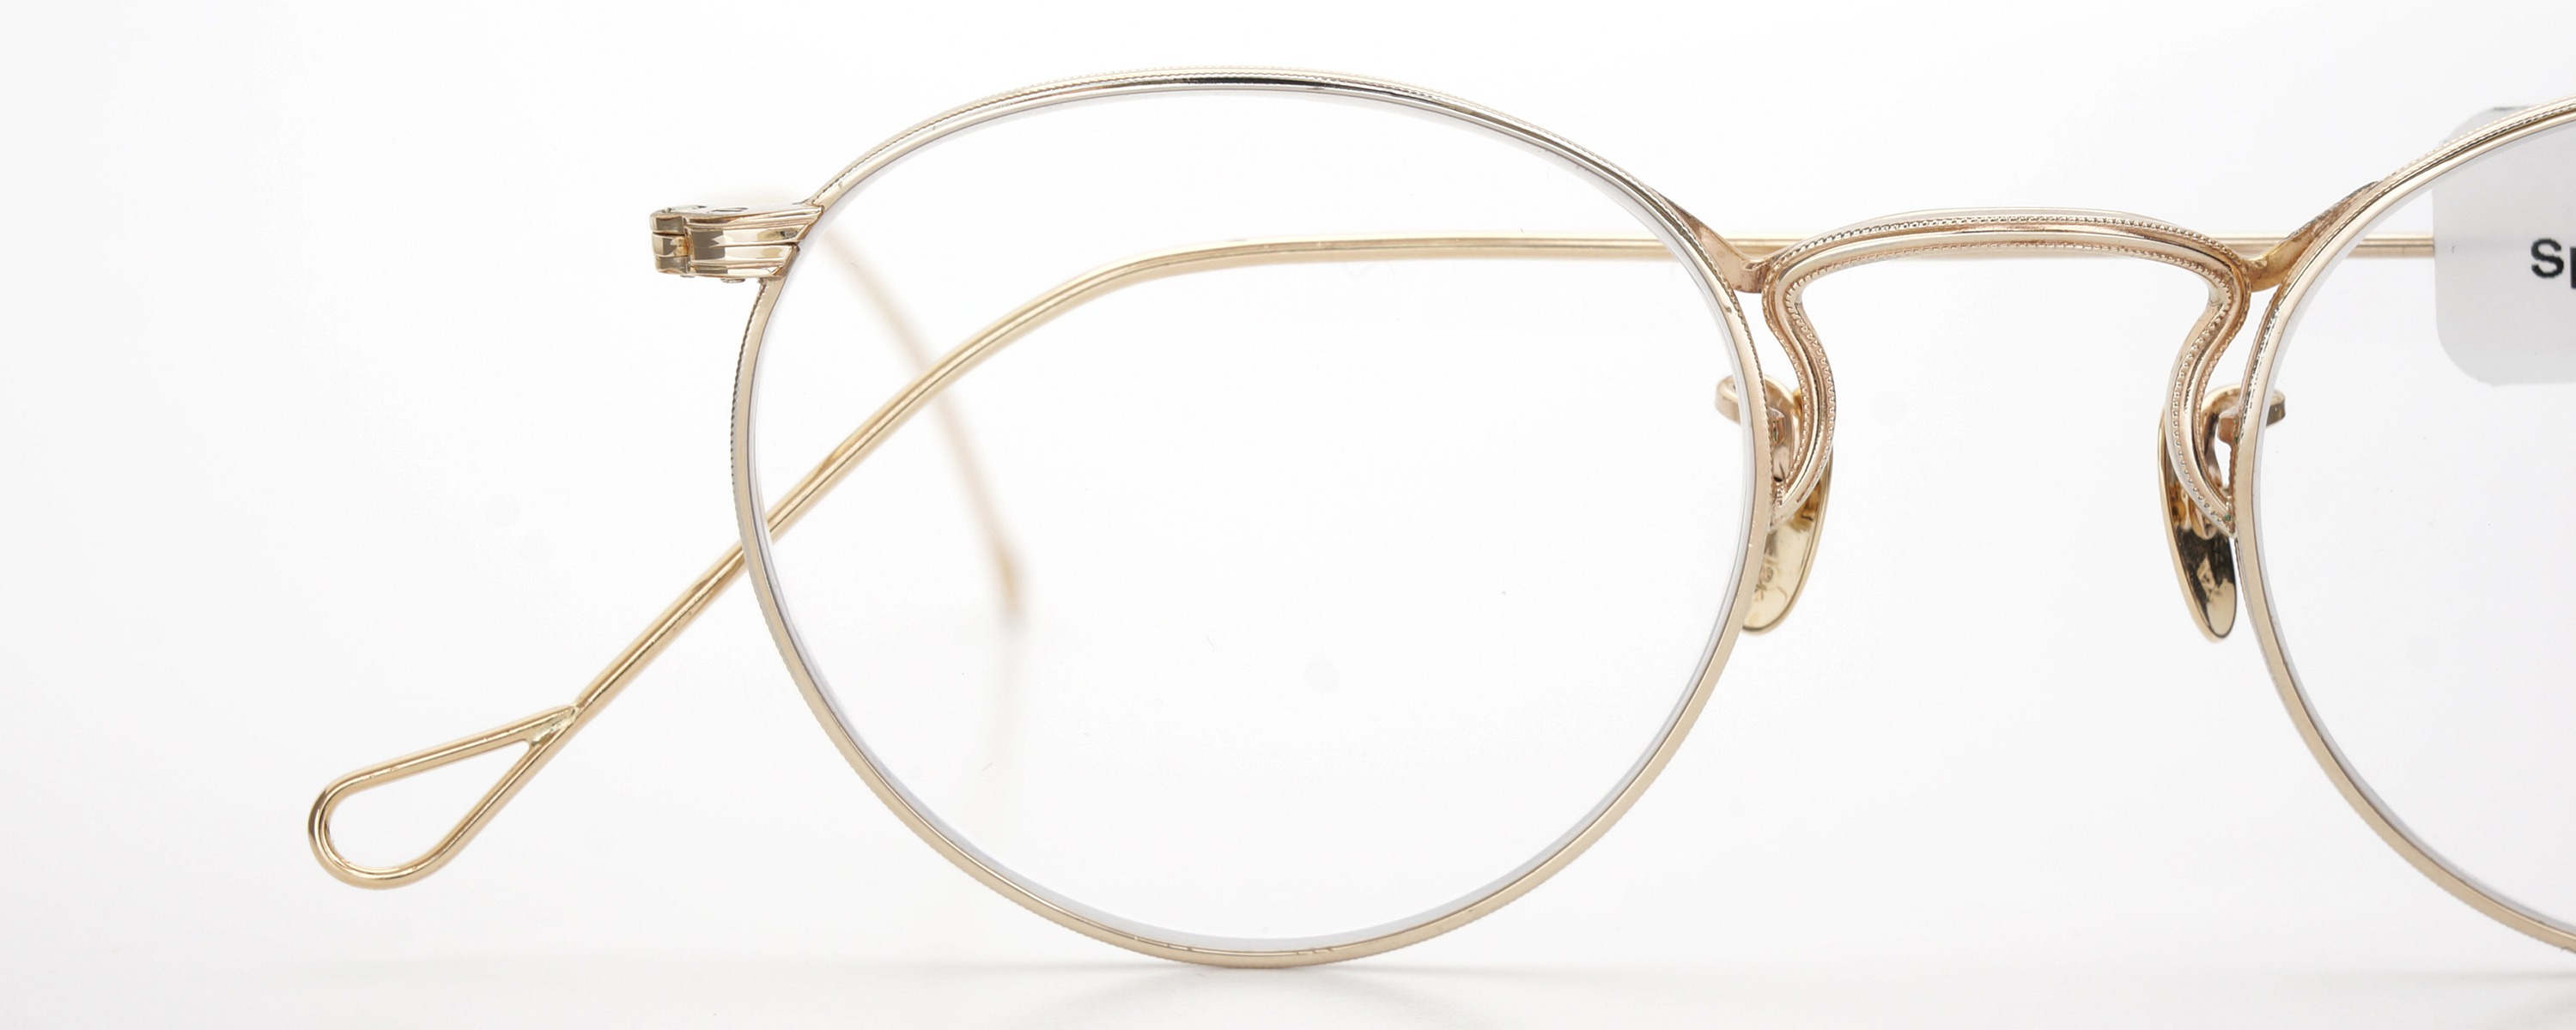 The Spectacle メガネ 1930s-40s  American Optical Full-Frame Ful-Vue P-5 YG 46-22 イメージ18